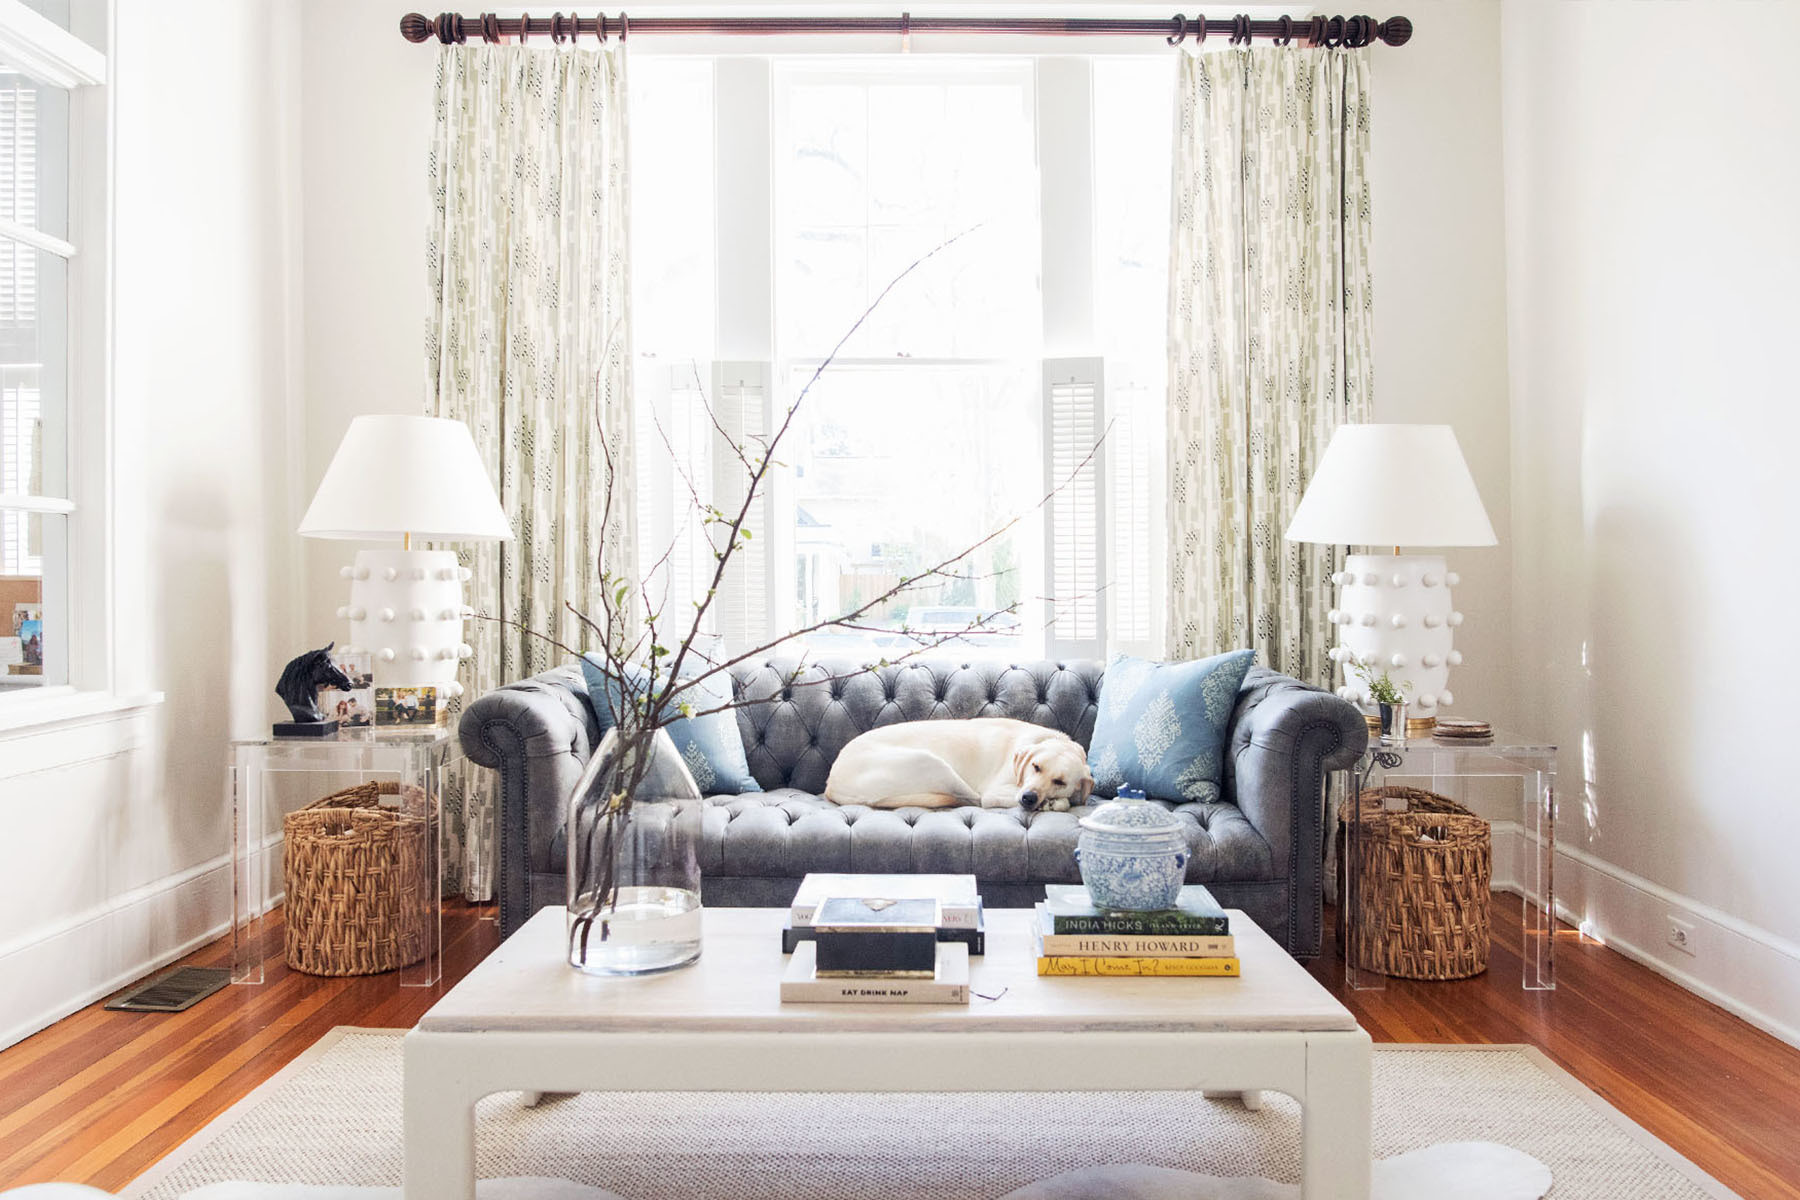 Weeziefounder Liz Eichholz's Savannah home oozes southern charm, Lola the lab curls up on the sofa. Antique ChesterfieldSofa |Schumacher Pillows |Scott Antique Market Coffee Table | Clutter; Fieldshop at The DewberryAccent Pieces |Target Vase|Safavieh Rug |Scott Antique Market Hide |Ballard Design Acrylic Side Tables |Kelly Wearstler Lamps |The Paris Market Horse Head Candle |HomeGoods Cane Baskets |Thomas Callaway Custom Drapes.